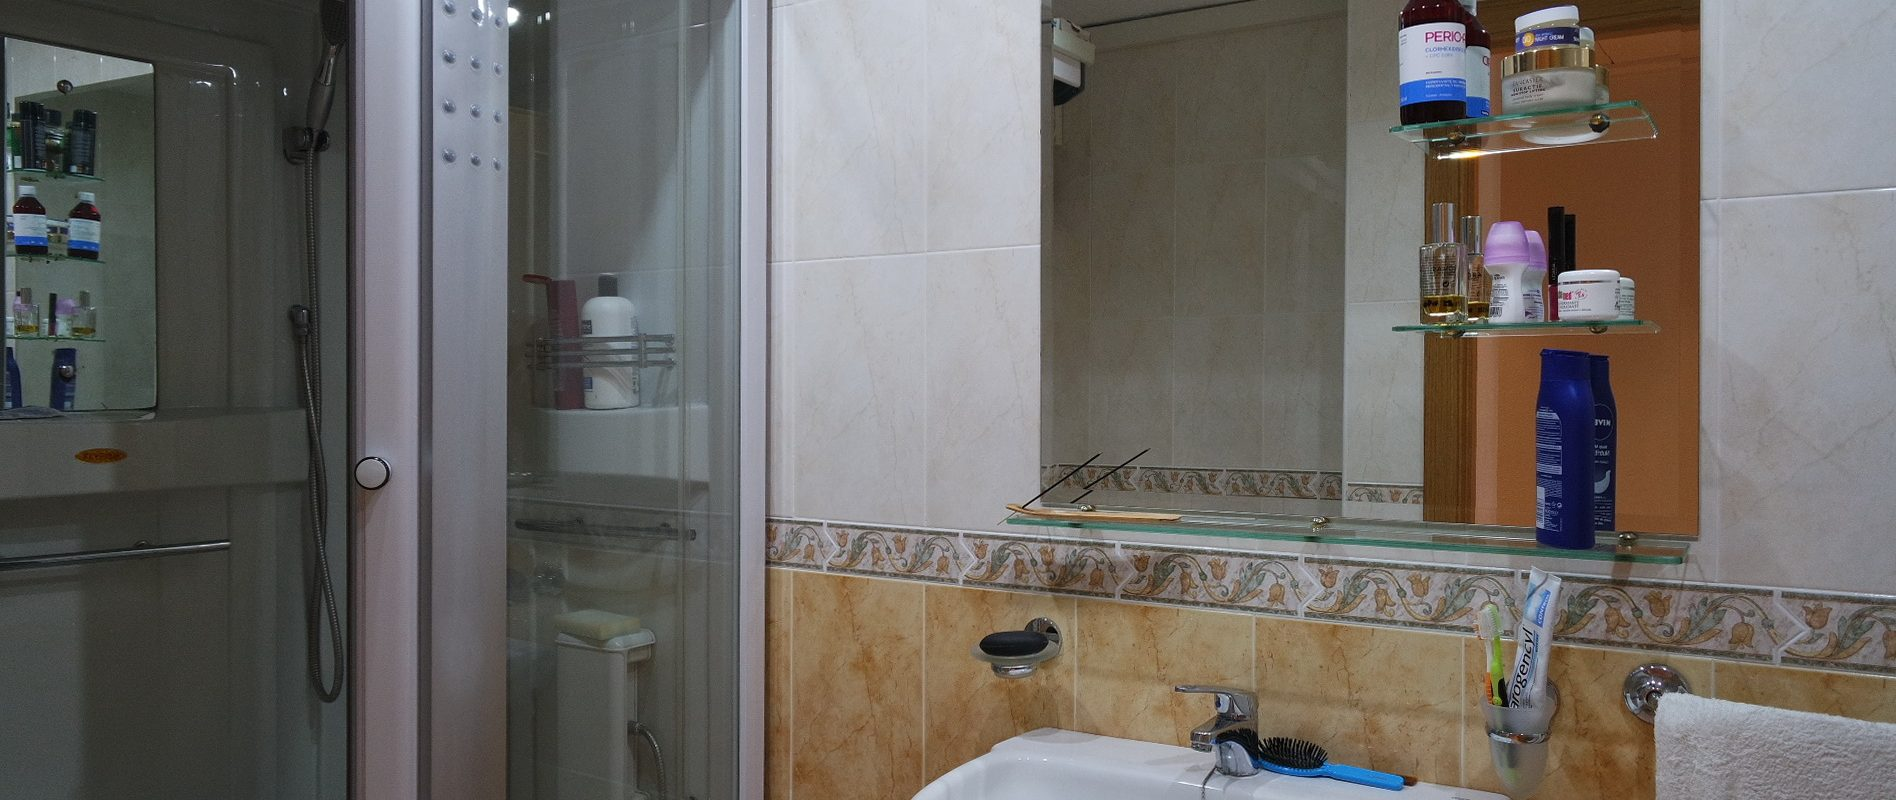 Downtown apartment with parking and storage for sale in Puerto de Mazarron